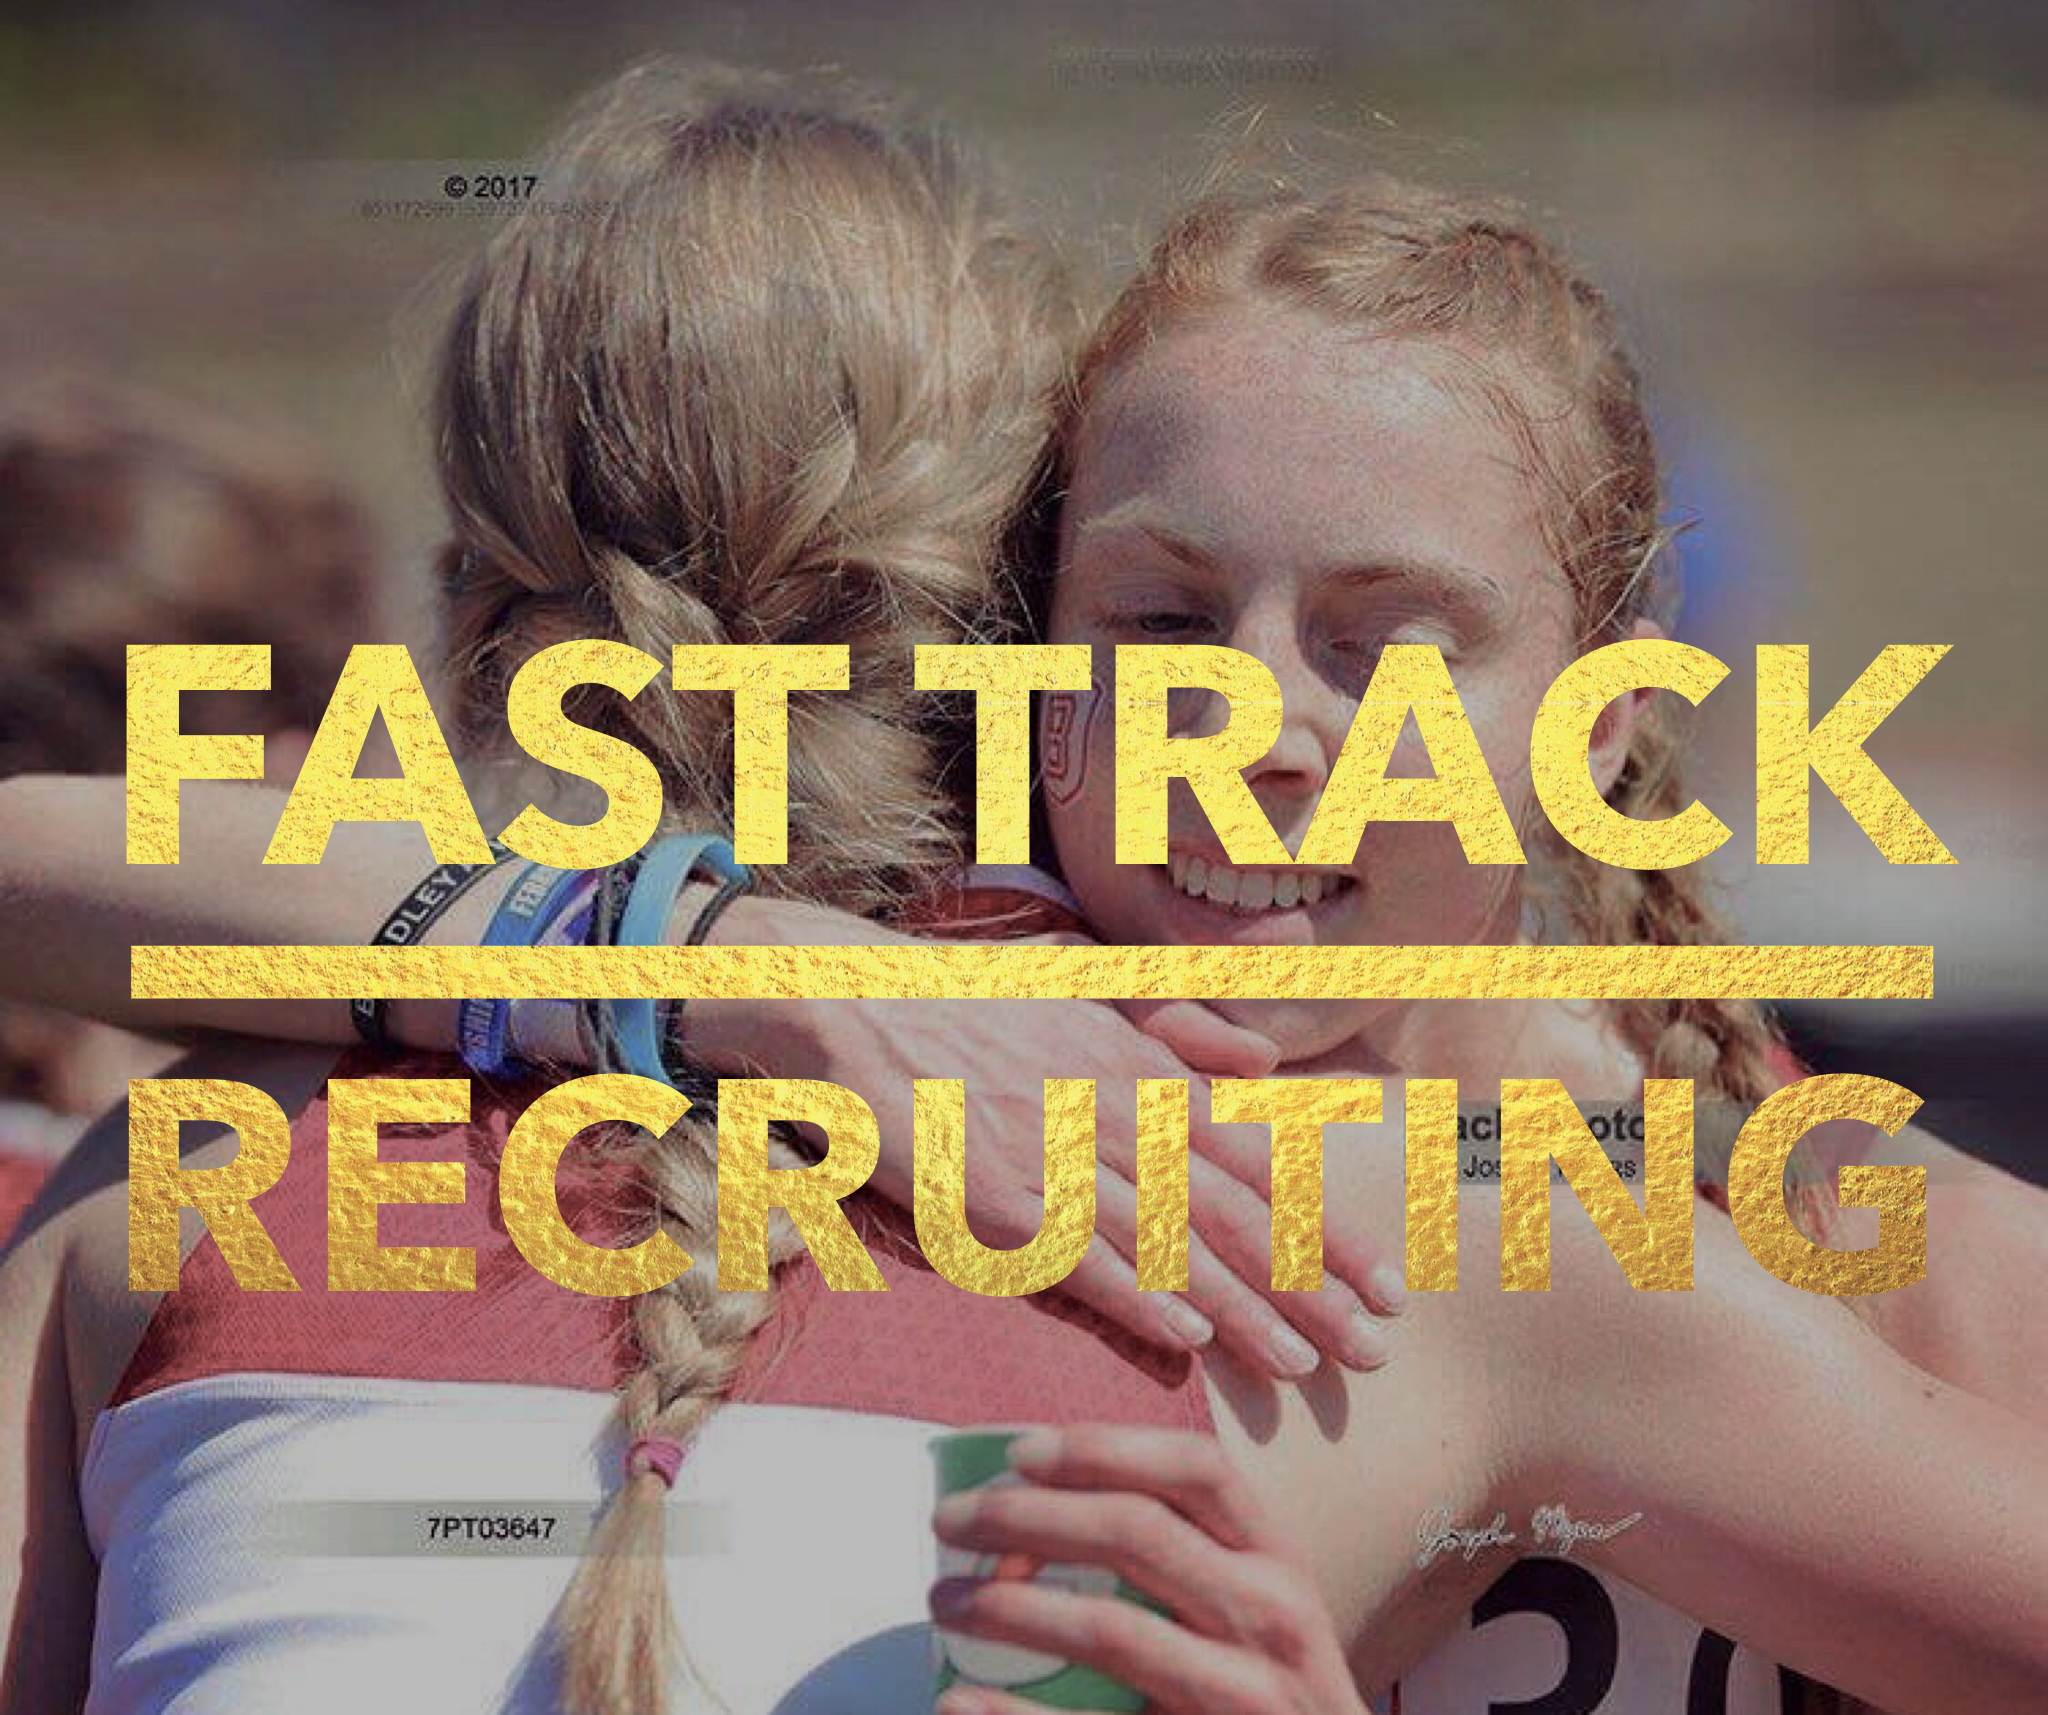 - COLLEGE TRACK AND FIELD RECRUITING by Willy WoodFrequently Asked Questions –Does my son or daughter really need a recruiting service to get recruited? Probably not - all they really need to do is run fast or jump or throw really far. If not, all they have to do is to initiate contact with enough college coaches. On the surface it seems as though the process is simple enough. Running is simple as well, very simple – we have been doing it for years. However, to run faster or faster longer or to jump or throw further or to vault higher, one would certainly benefit from a knowledgeable coach. Does my son or daughter really need a coach to run fast? No, not if they are naturally fast. But, they do need a knowledgeable coach to run faster. That is what we do. Are we needed – probably not? Many, many high school student-athletes are recruited annually without using a recruiting service – just as many, many 100m runners run fast without adequate preparation or training. However, if you want to run faster…if you want to get into a school one rung higher than you initially anticipated, if you want to get more scholarship money than you thought possible, and if you want to be exposed to programs and colleges that would be great fits for you, but you currently know nothing about – that is where we come in. Are we needed, no. Will we make your experience better, YES! Will you end up with more and better choices and more lucrative offers, YES!